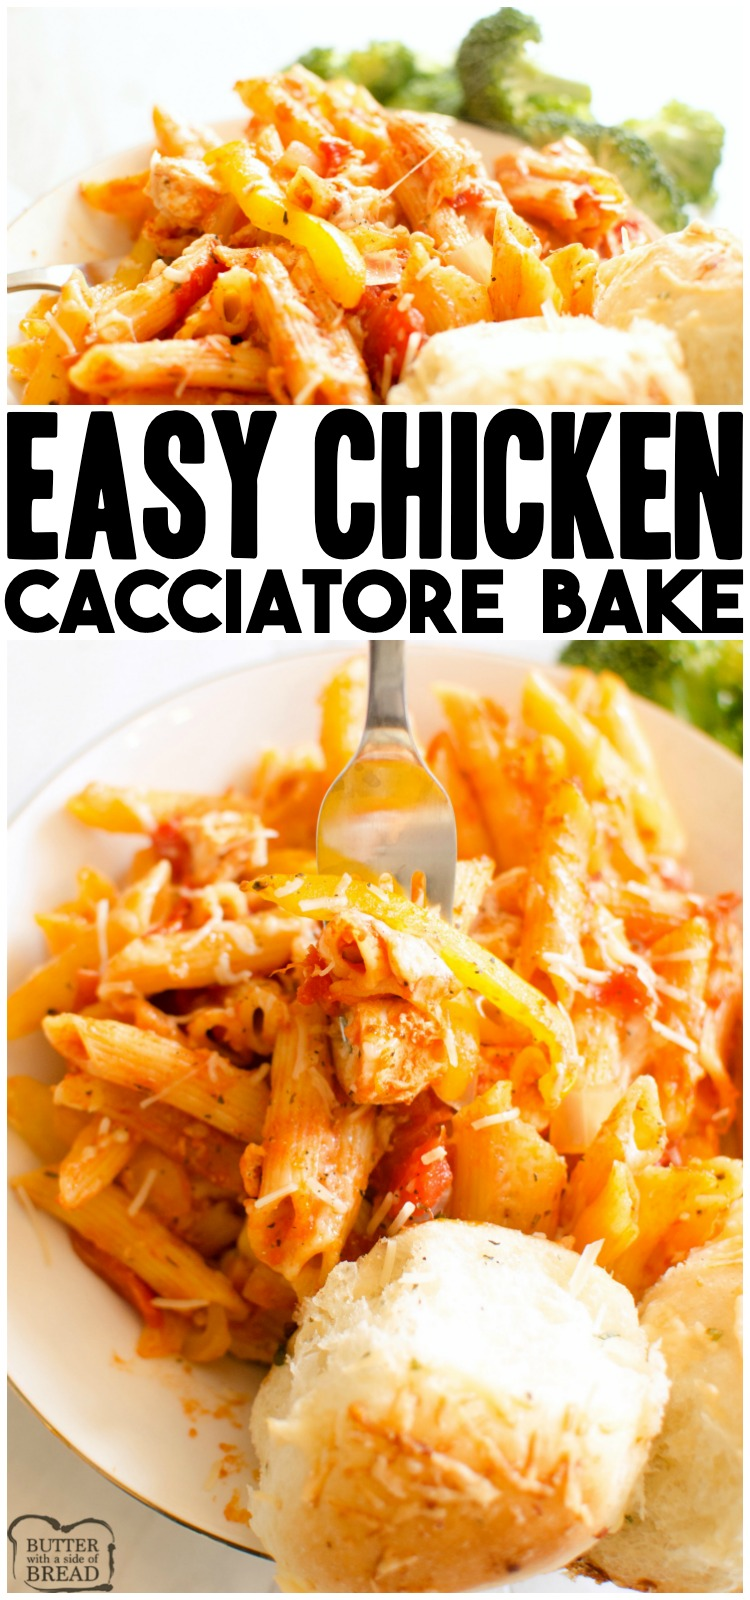 One-Pot Chicken Cacciatore is a simple & delicious chicken dinner. Easy Chicken Cacciatore recipe baked with pasta, chicken, tomatoes, peppers & cheese in about an hour. Quick & easy chicken recipe perfect for weeknight dinners.